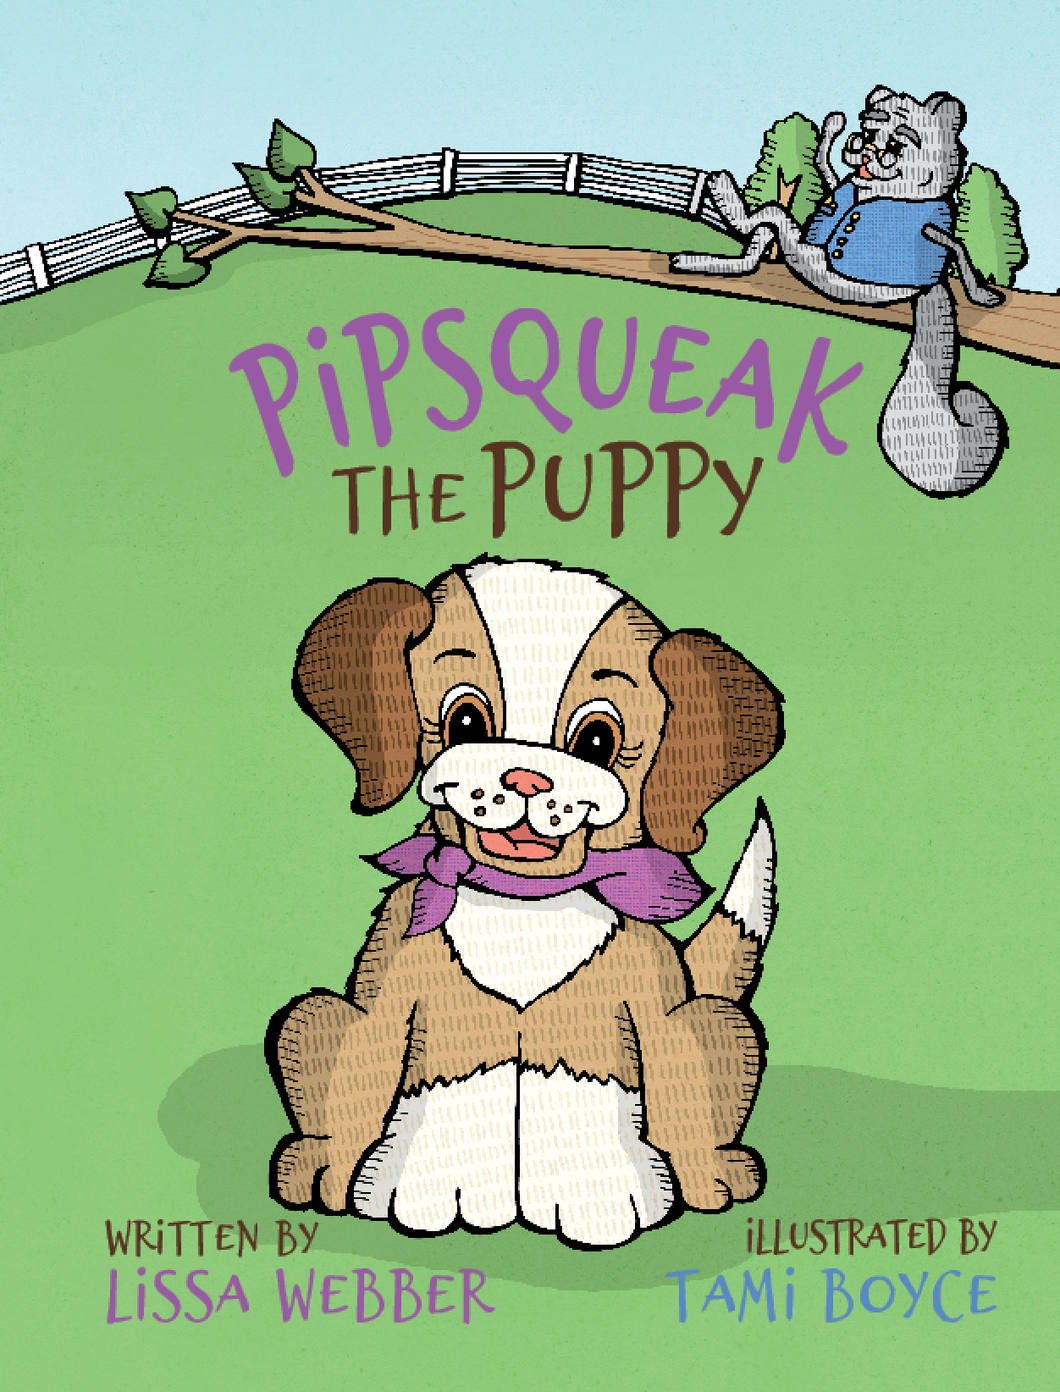 Pipsqueak Bundle - 2 Books, both signed